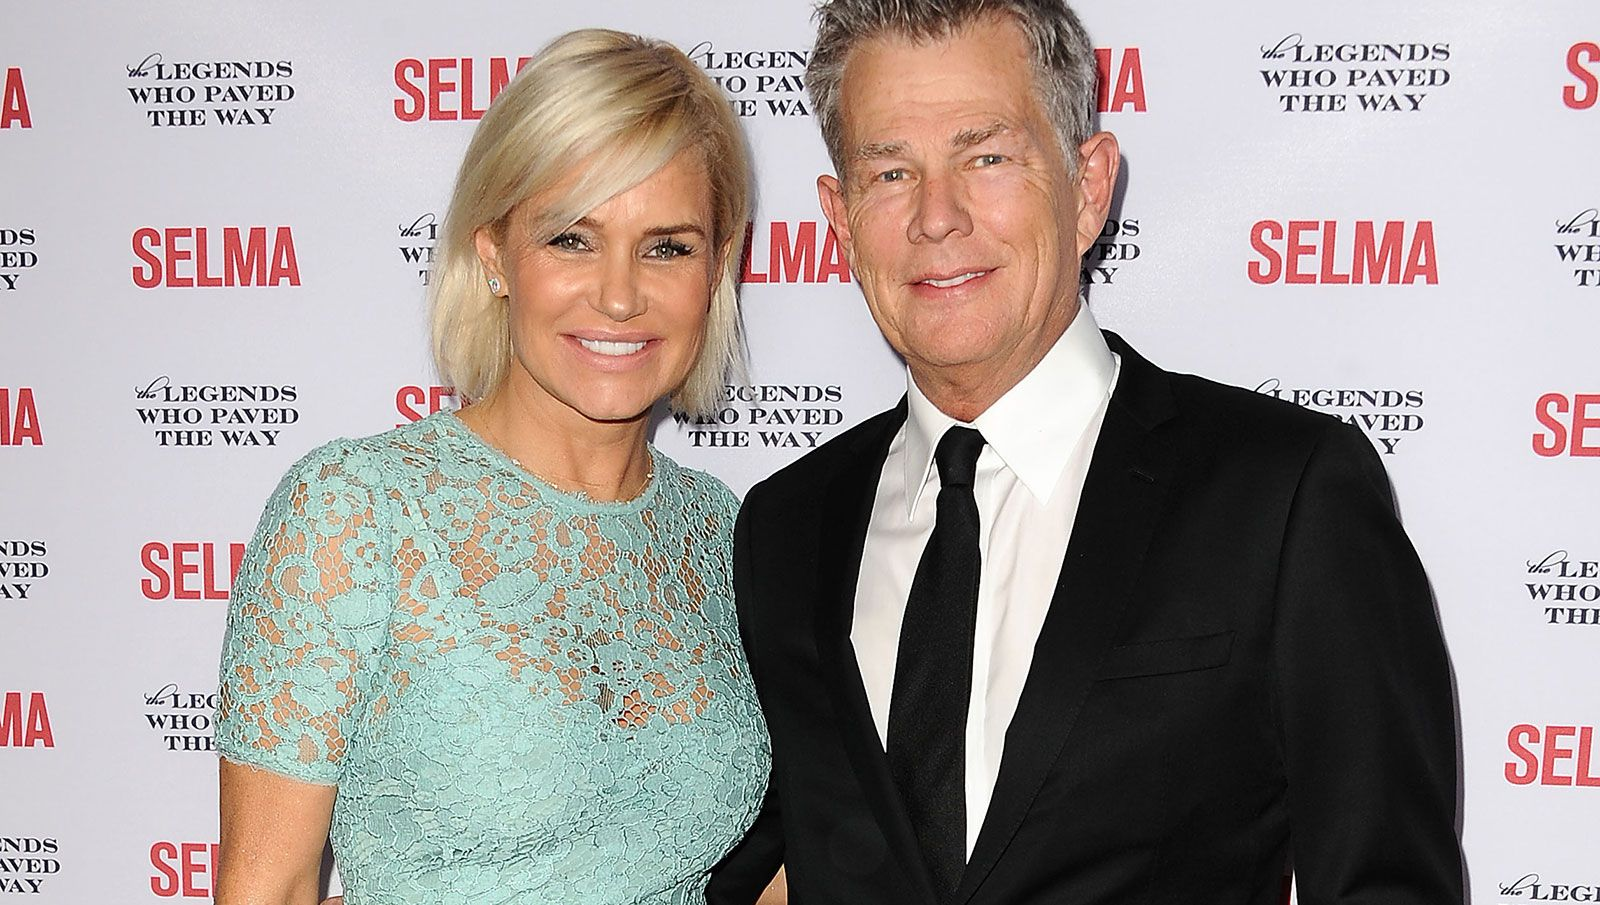 Yolanda Foster Speaks Out About Her Split From David Foster Yolanda Foster David Foster Daughters The Fosters